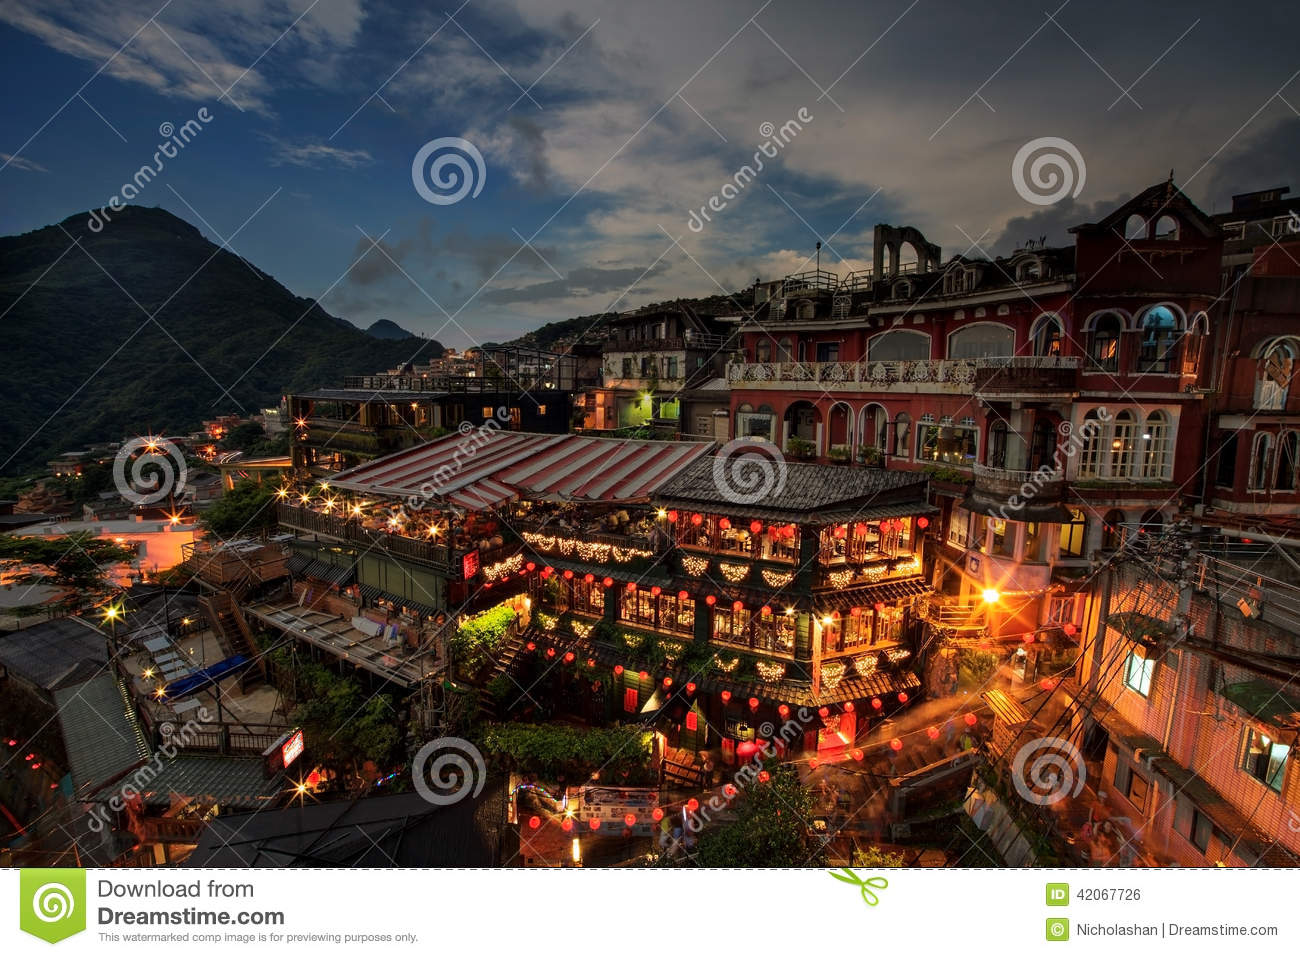 Time lapse of Hillside teahouses in Jiufen, Taiwan.